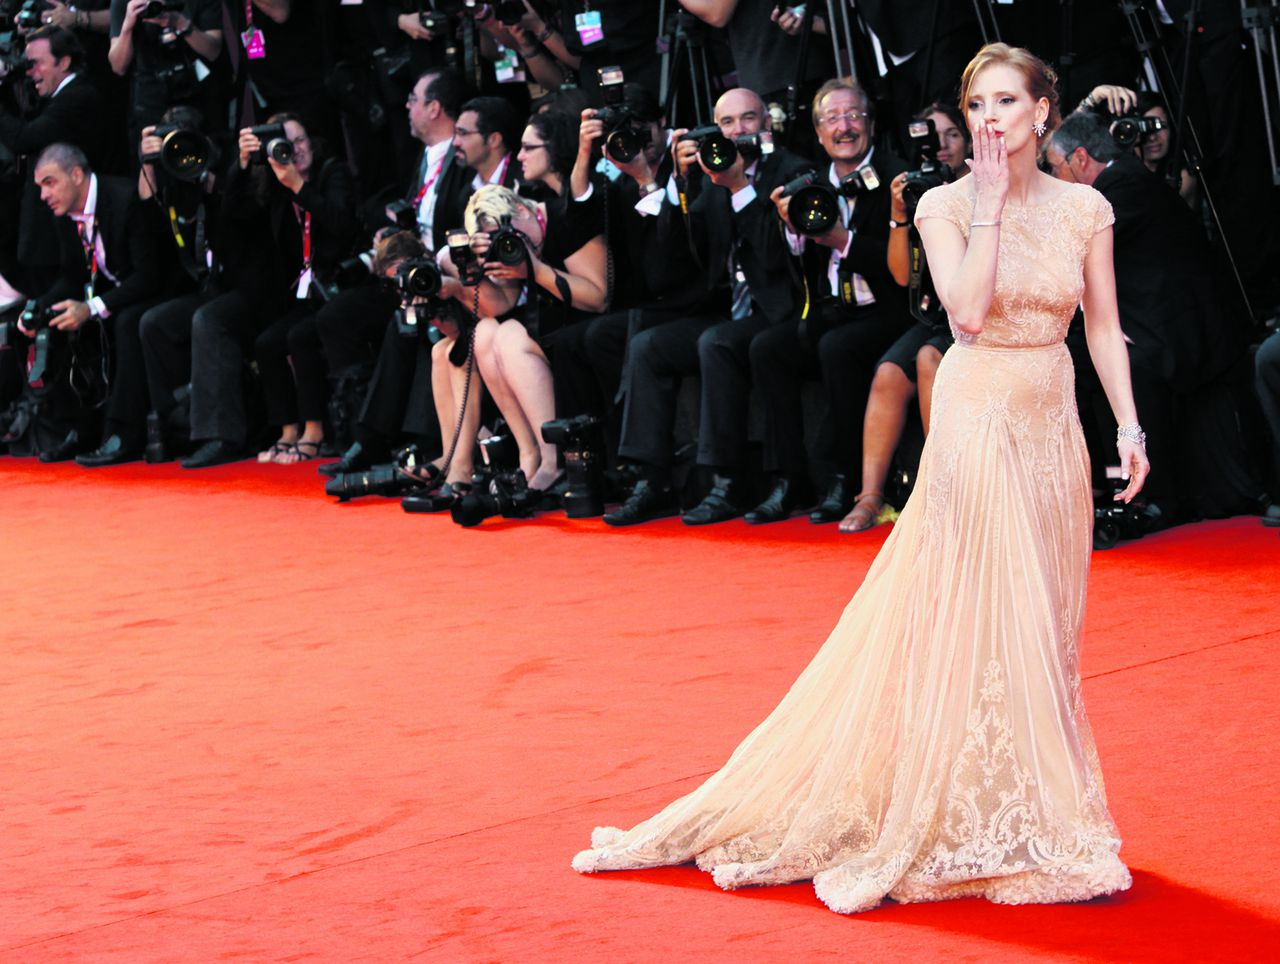 U.S. Actress Jessica Chastain arrives on the red carpet for the premiere of the film Wilde Salome at the 68th edition of the Venice Film Festival in Venice, Italy, Sunday, Sept. 4, 2011. (AP Photo/Joel Ryan)